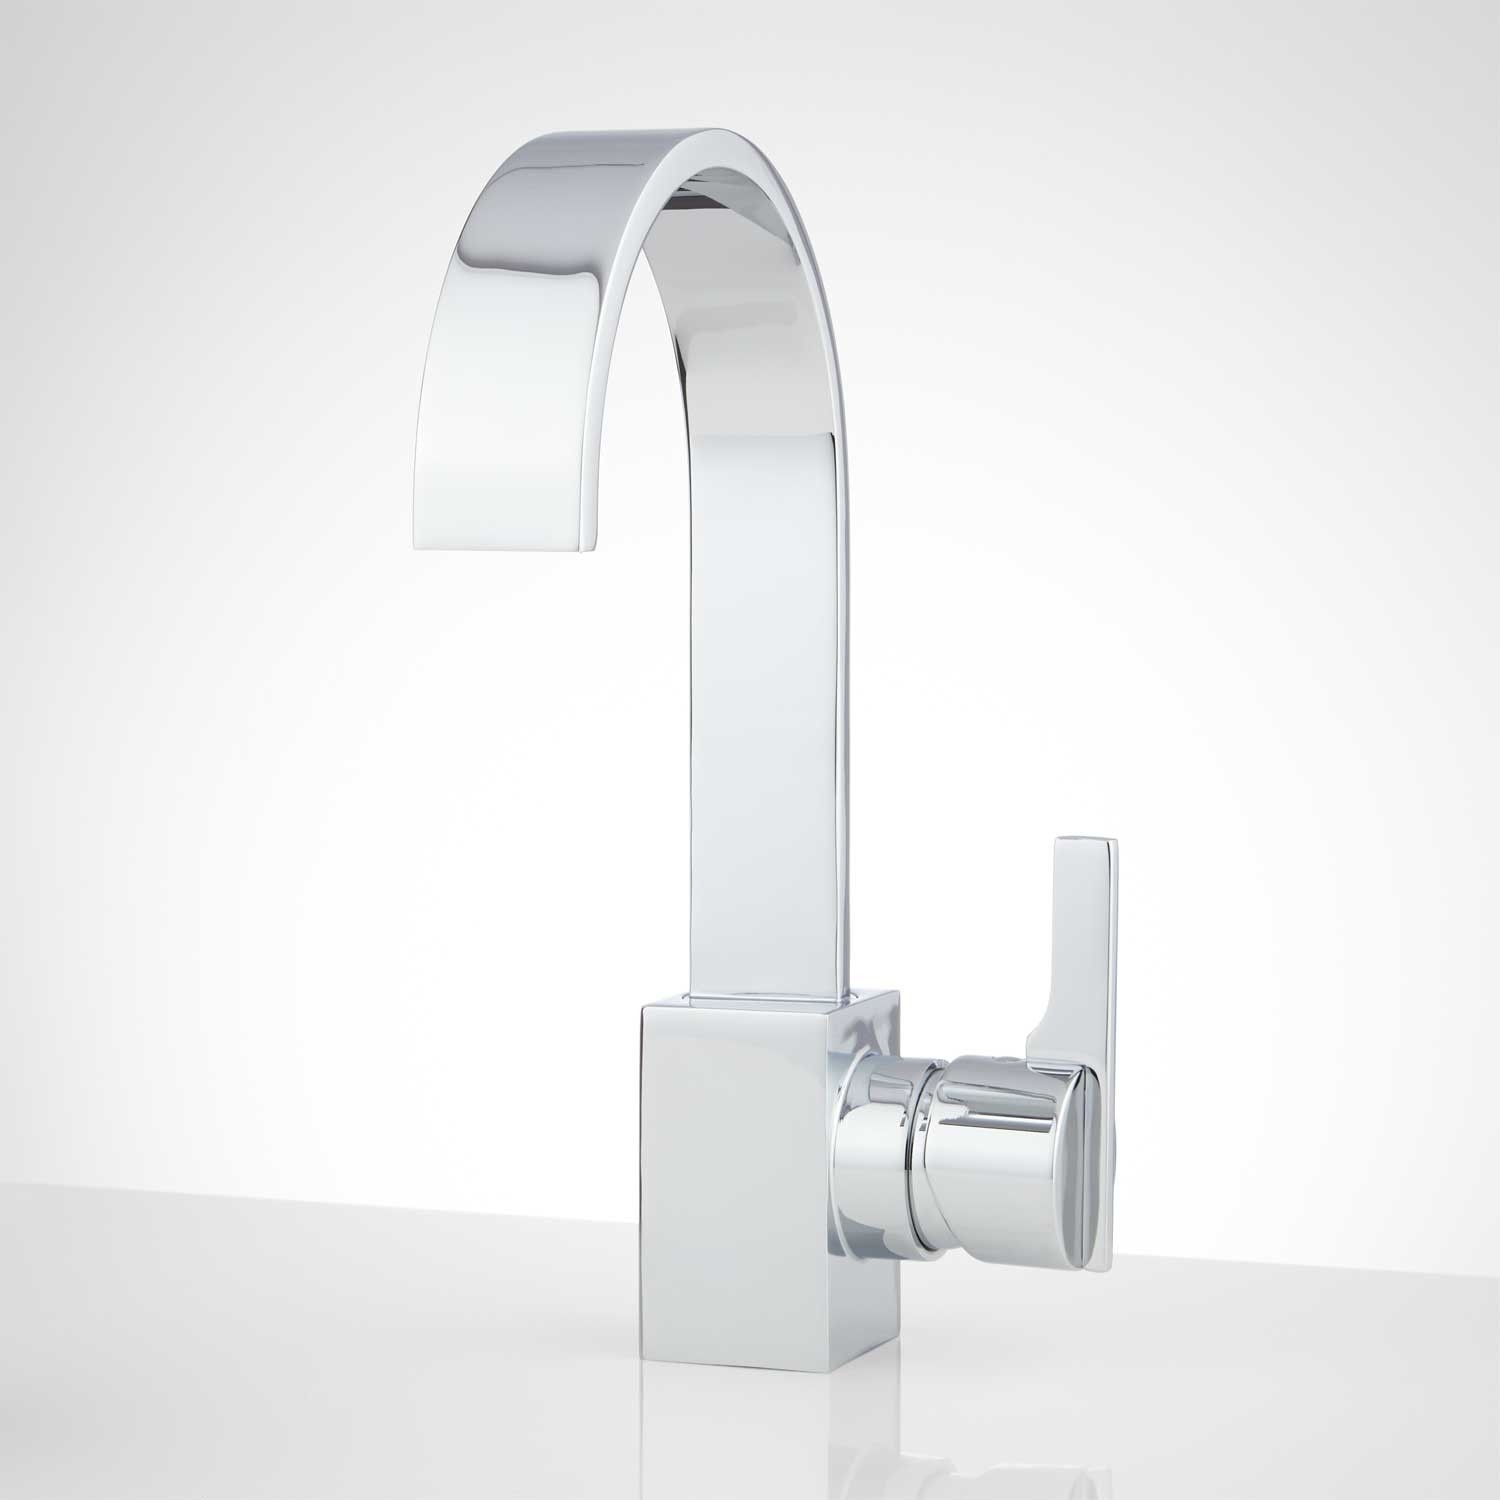 Ideas, ultra single hole bathroom faucet with pop up drain bathroom with regard to proportions 1500 x 1500  .